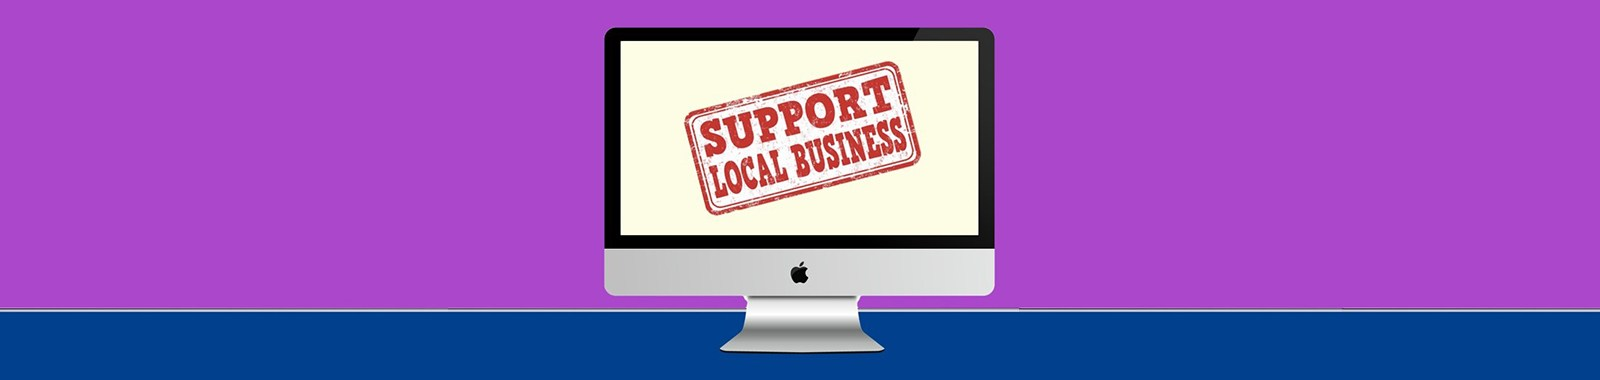 support-local-business-eye